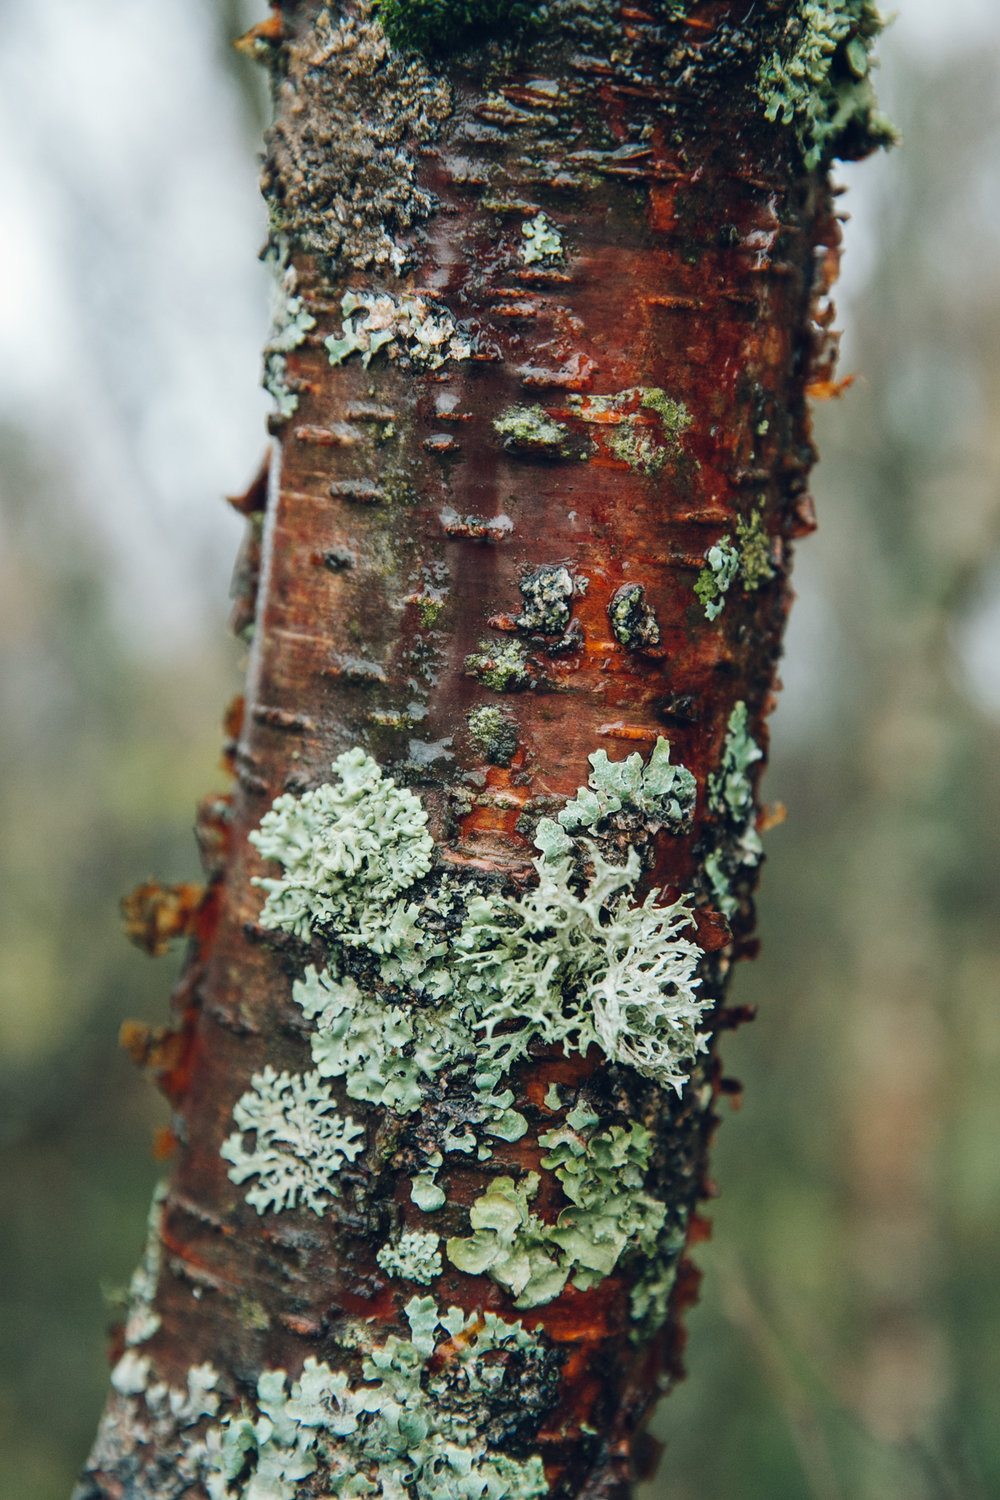 Lichen on birch bark.